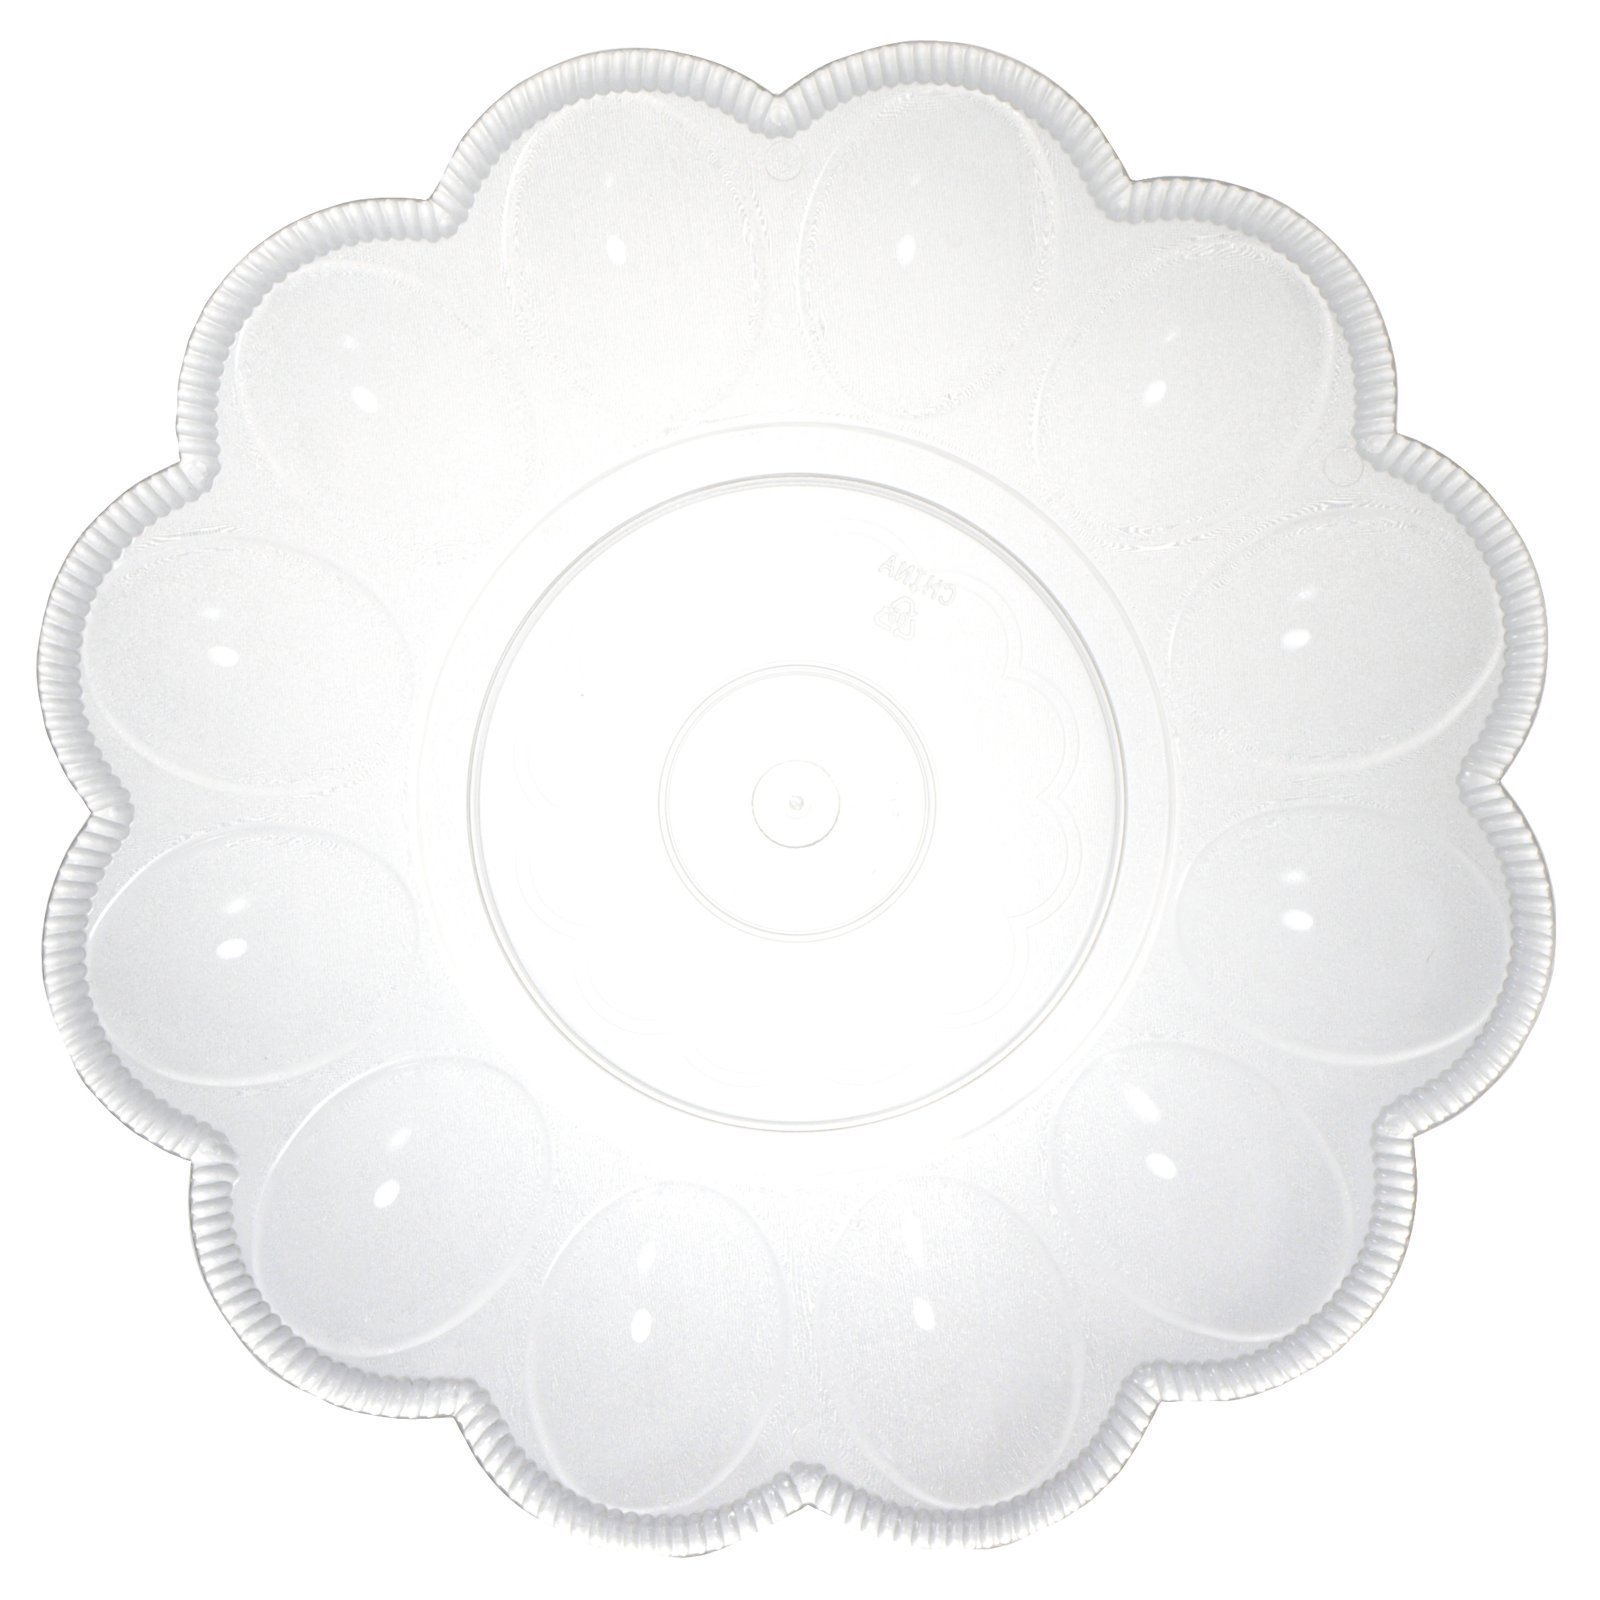 Clear Egg Platter Party Supplies by Northwest Enterprises (Image #1)